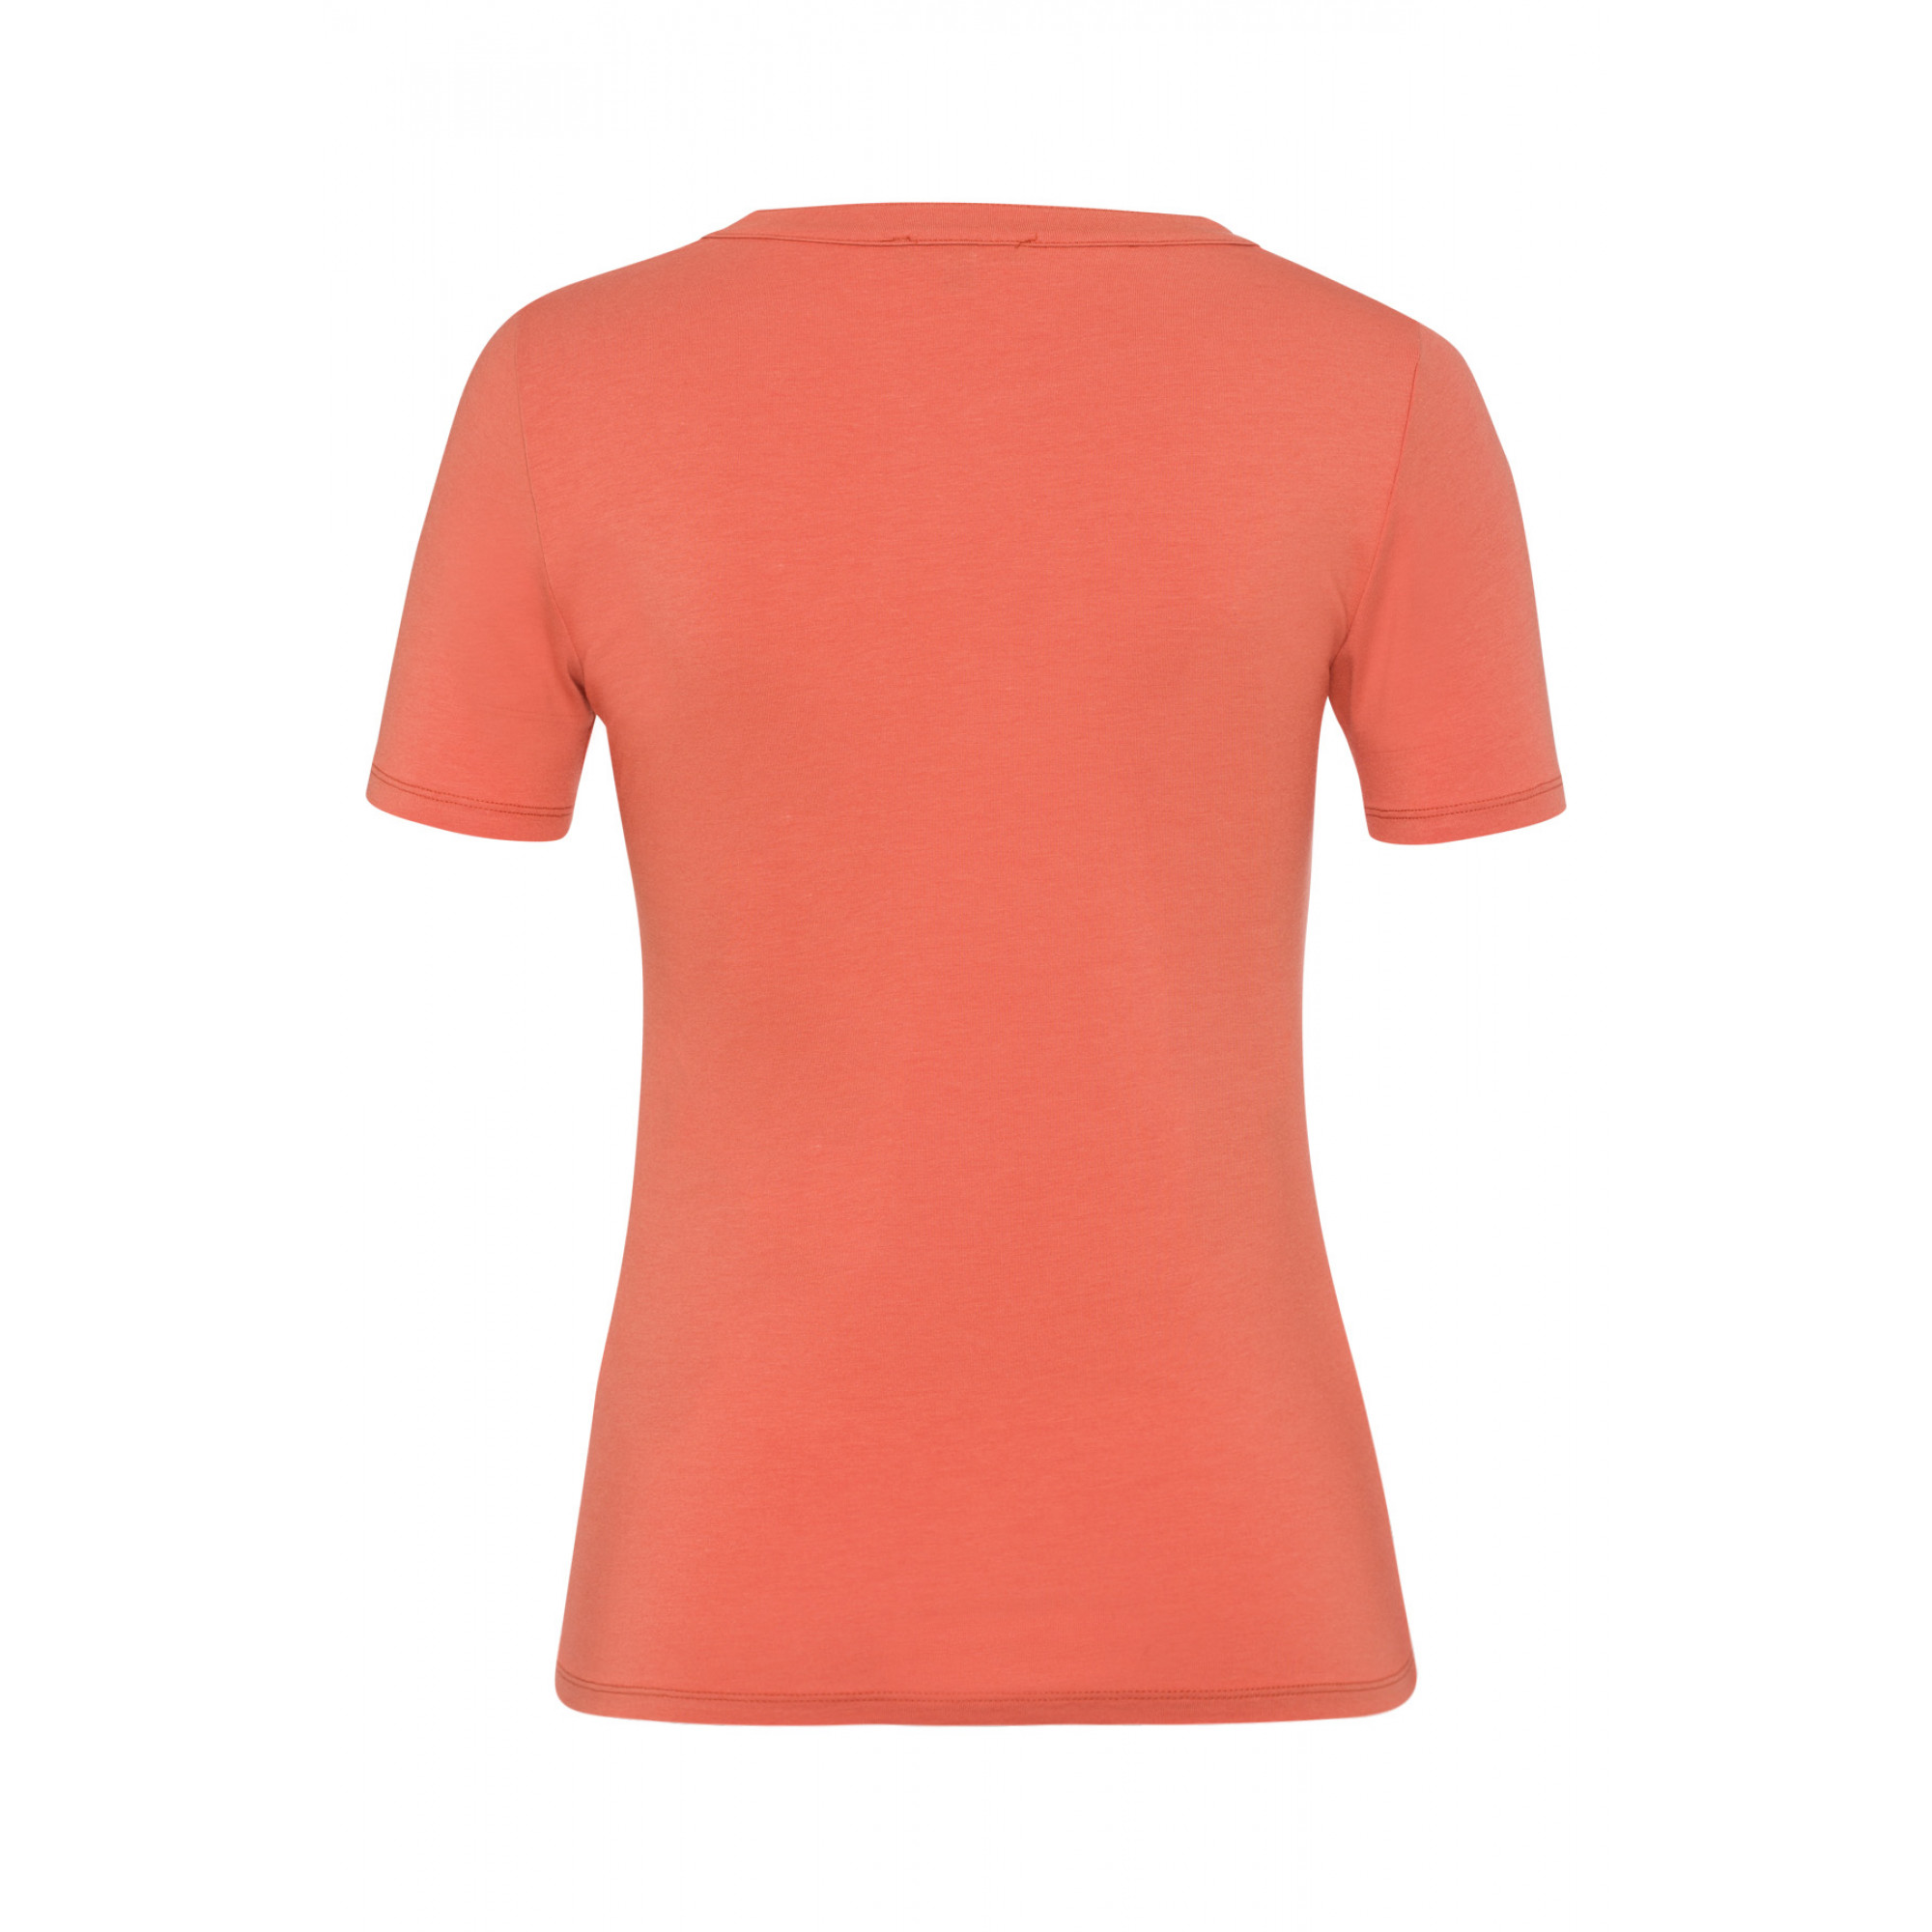 T-Shirt, burned orange 91250028-0436 2